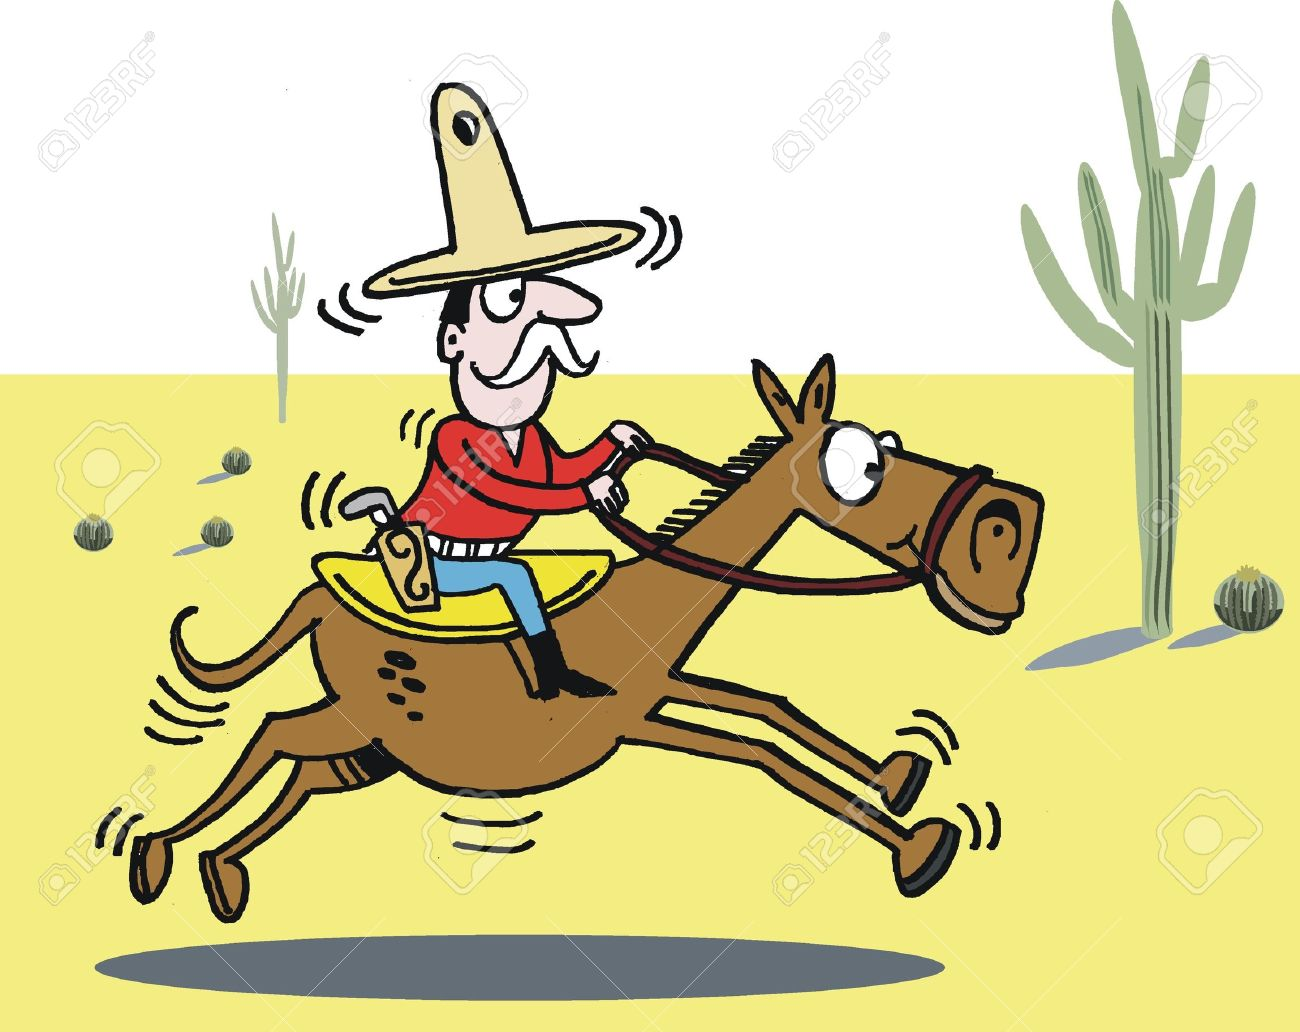 Cowboy On Horse Cartoon Royalty Free Cliparts Vectors And Stock